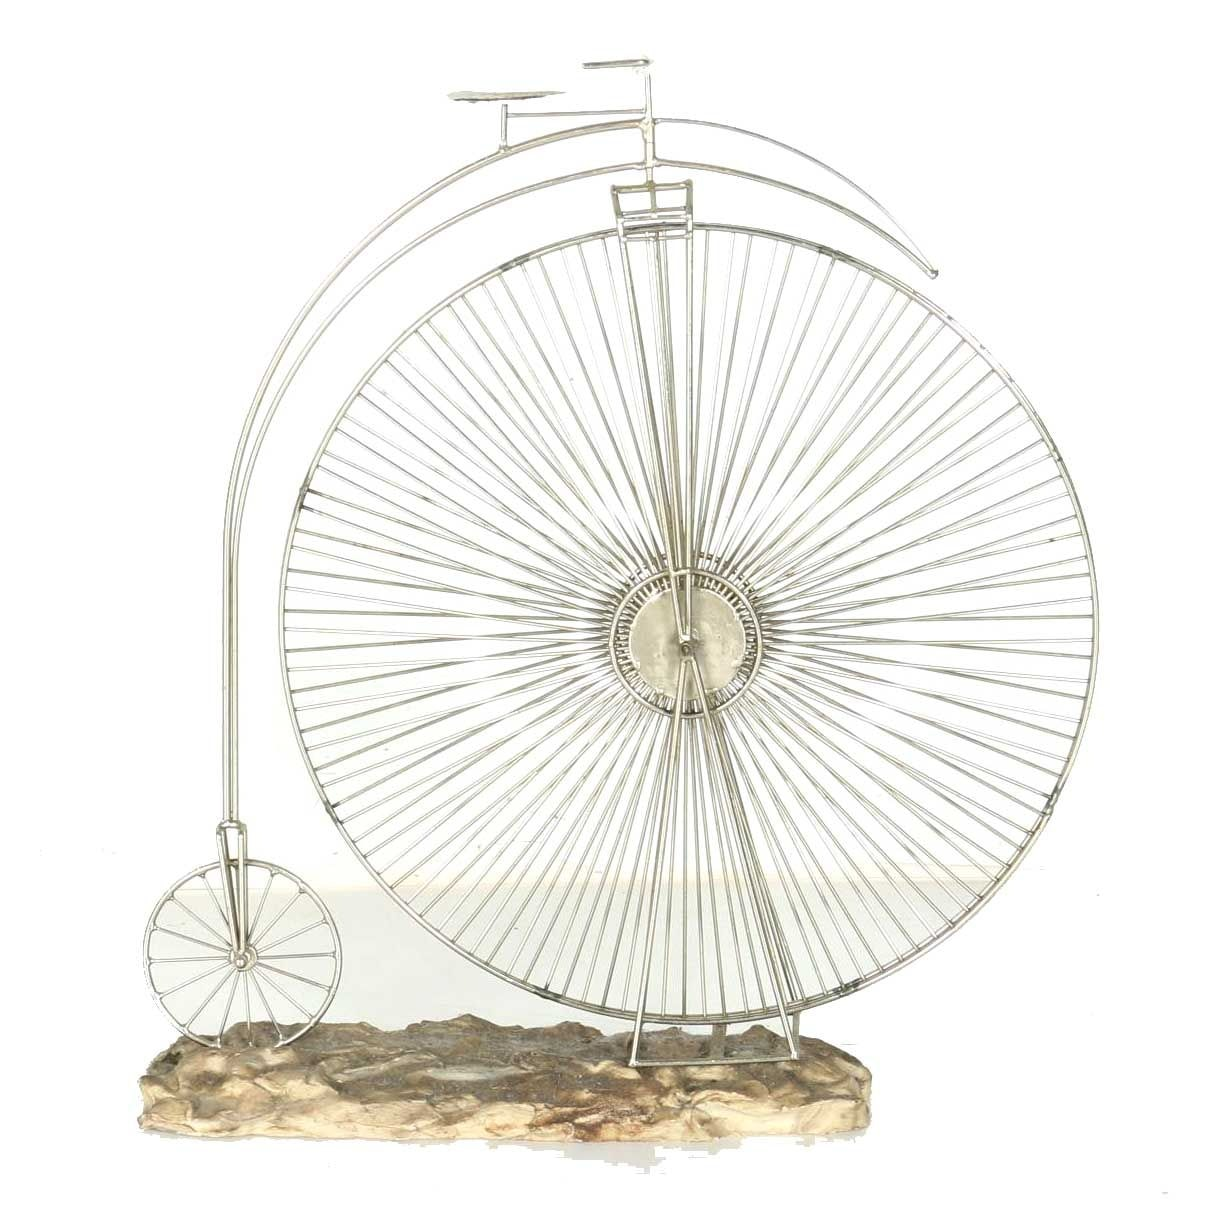 Metal Penny Farthing Bicycle Sculpture